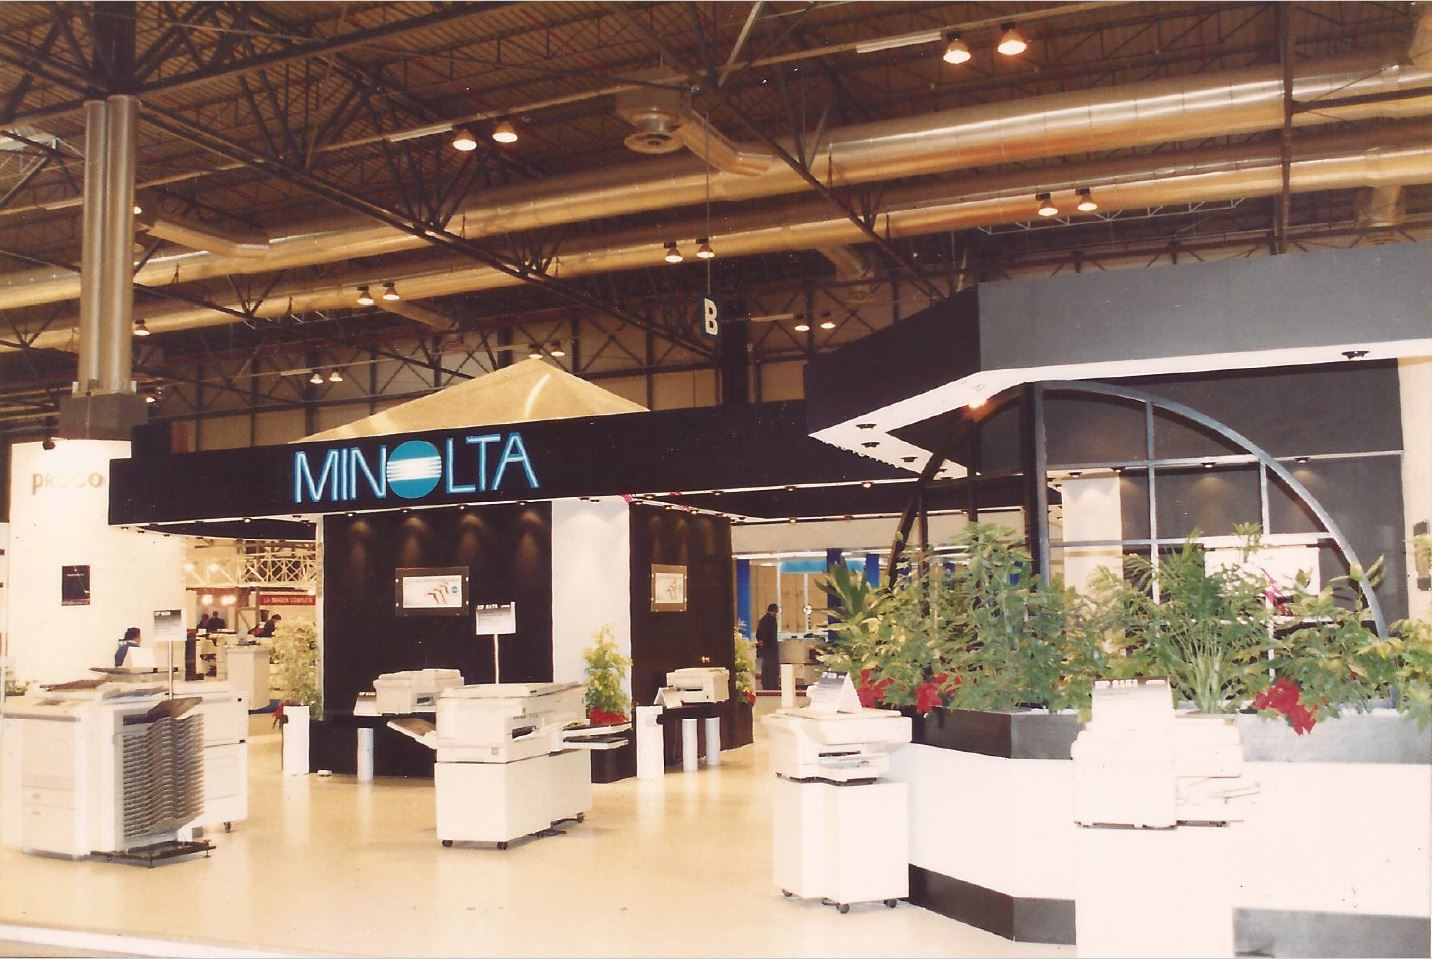 Stand for Minolta at SIMO